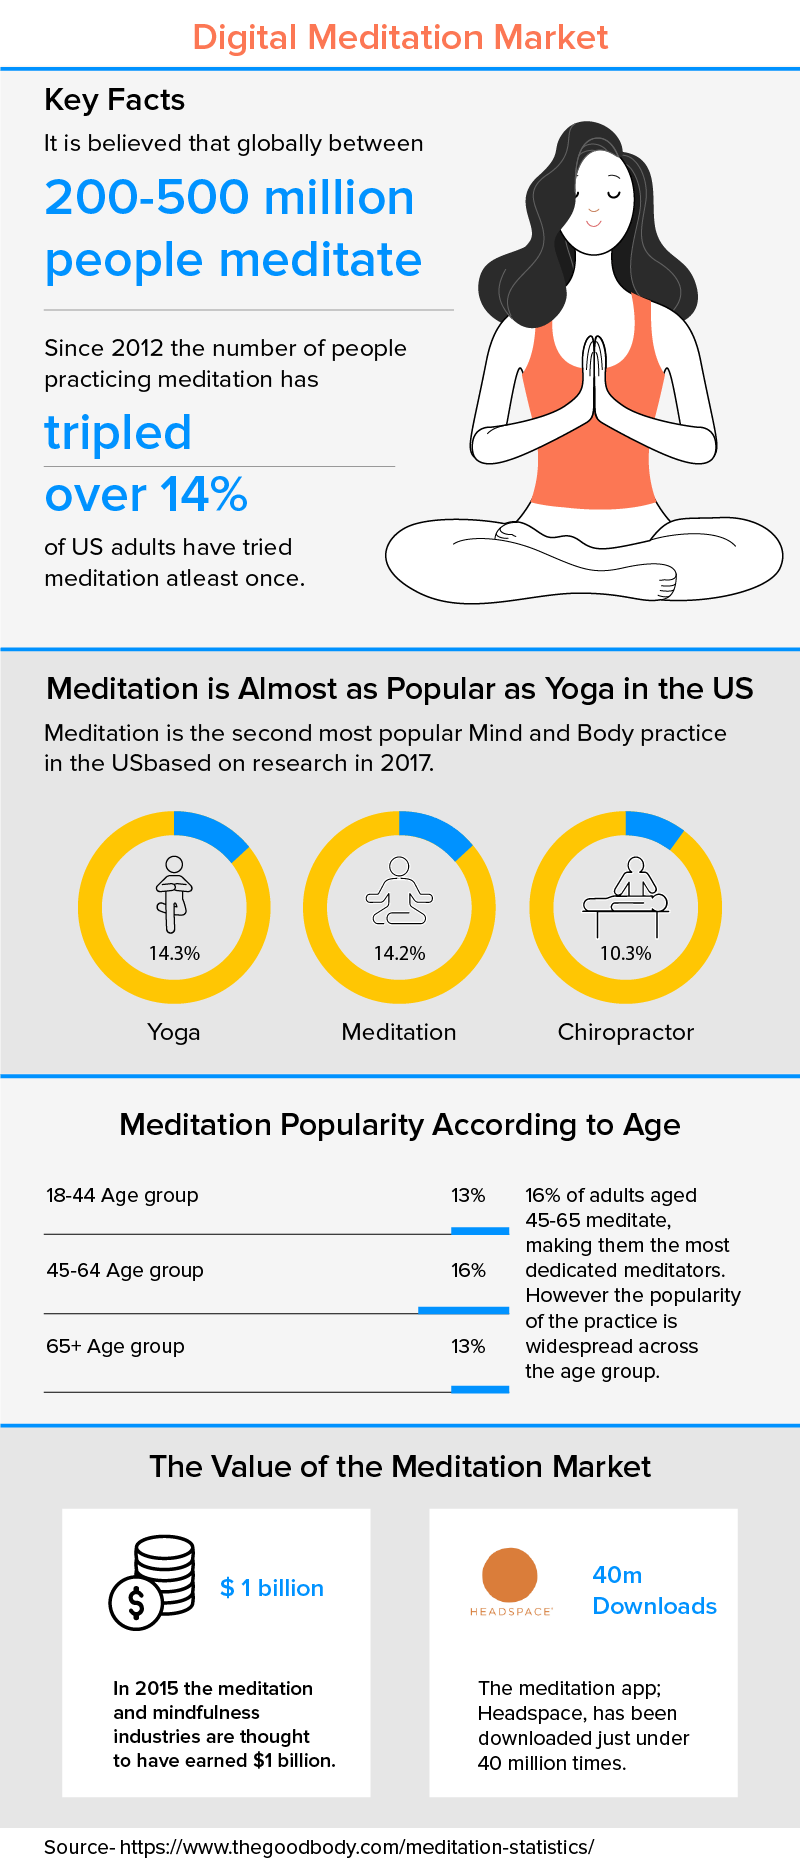 Digital Meditation Market